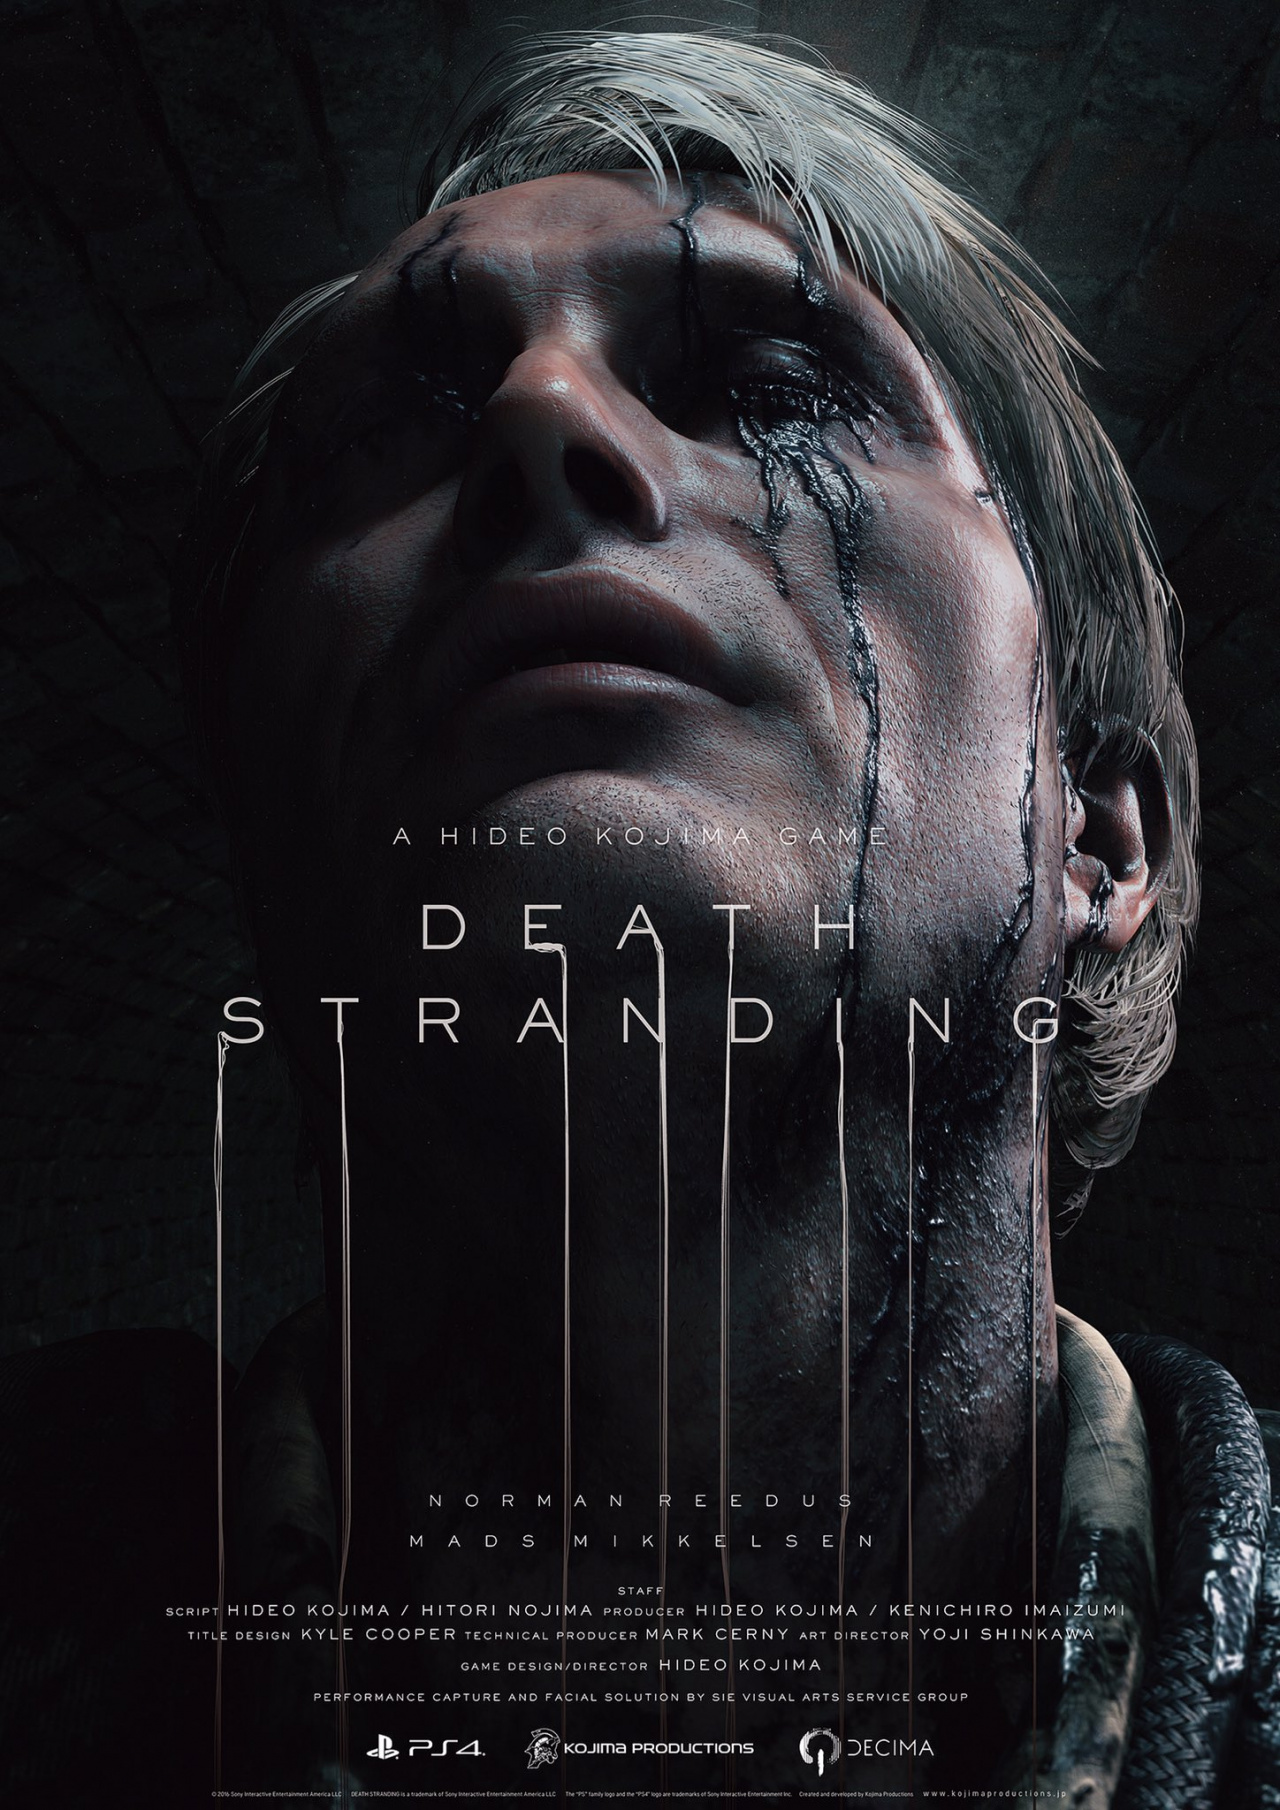 Death Stranding Delights with Barmy PS4 Trailer